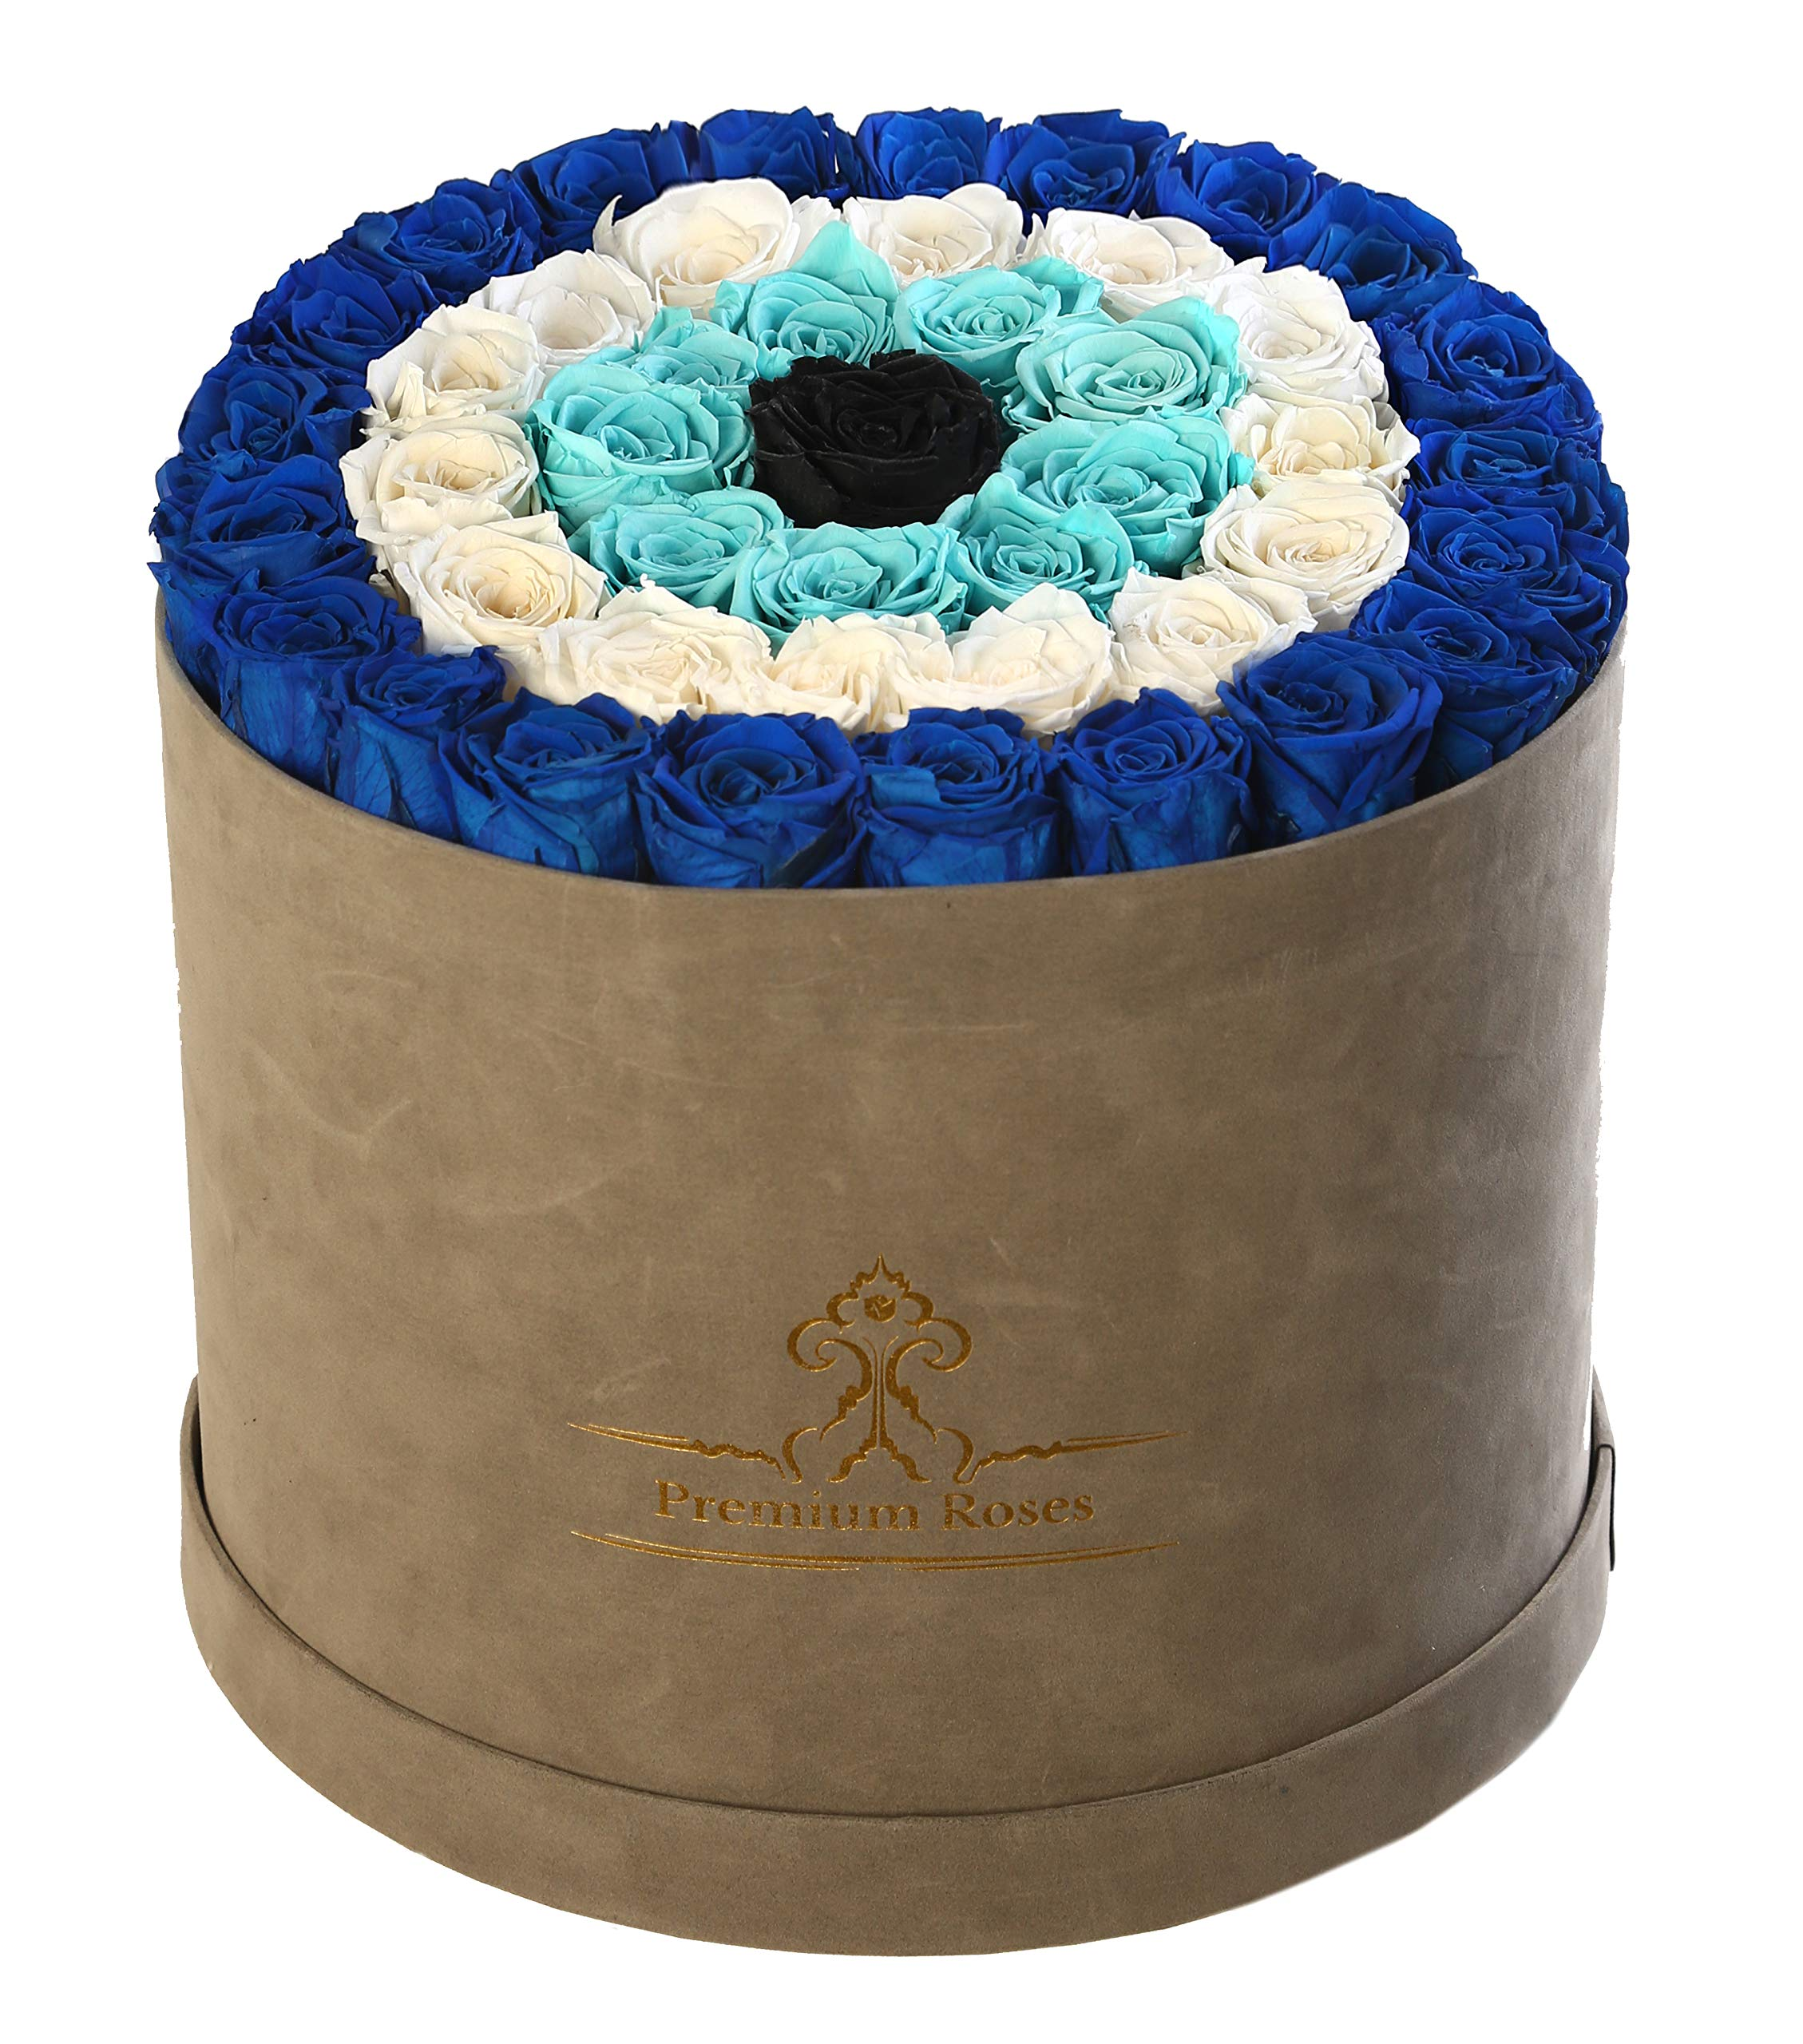 Premium Roses  Real Roses That Last a Year   Fresh Flowers  Roses in a Box (Gray Velvet Box, Large) by Premium Roses